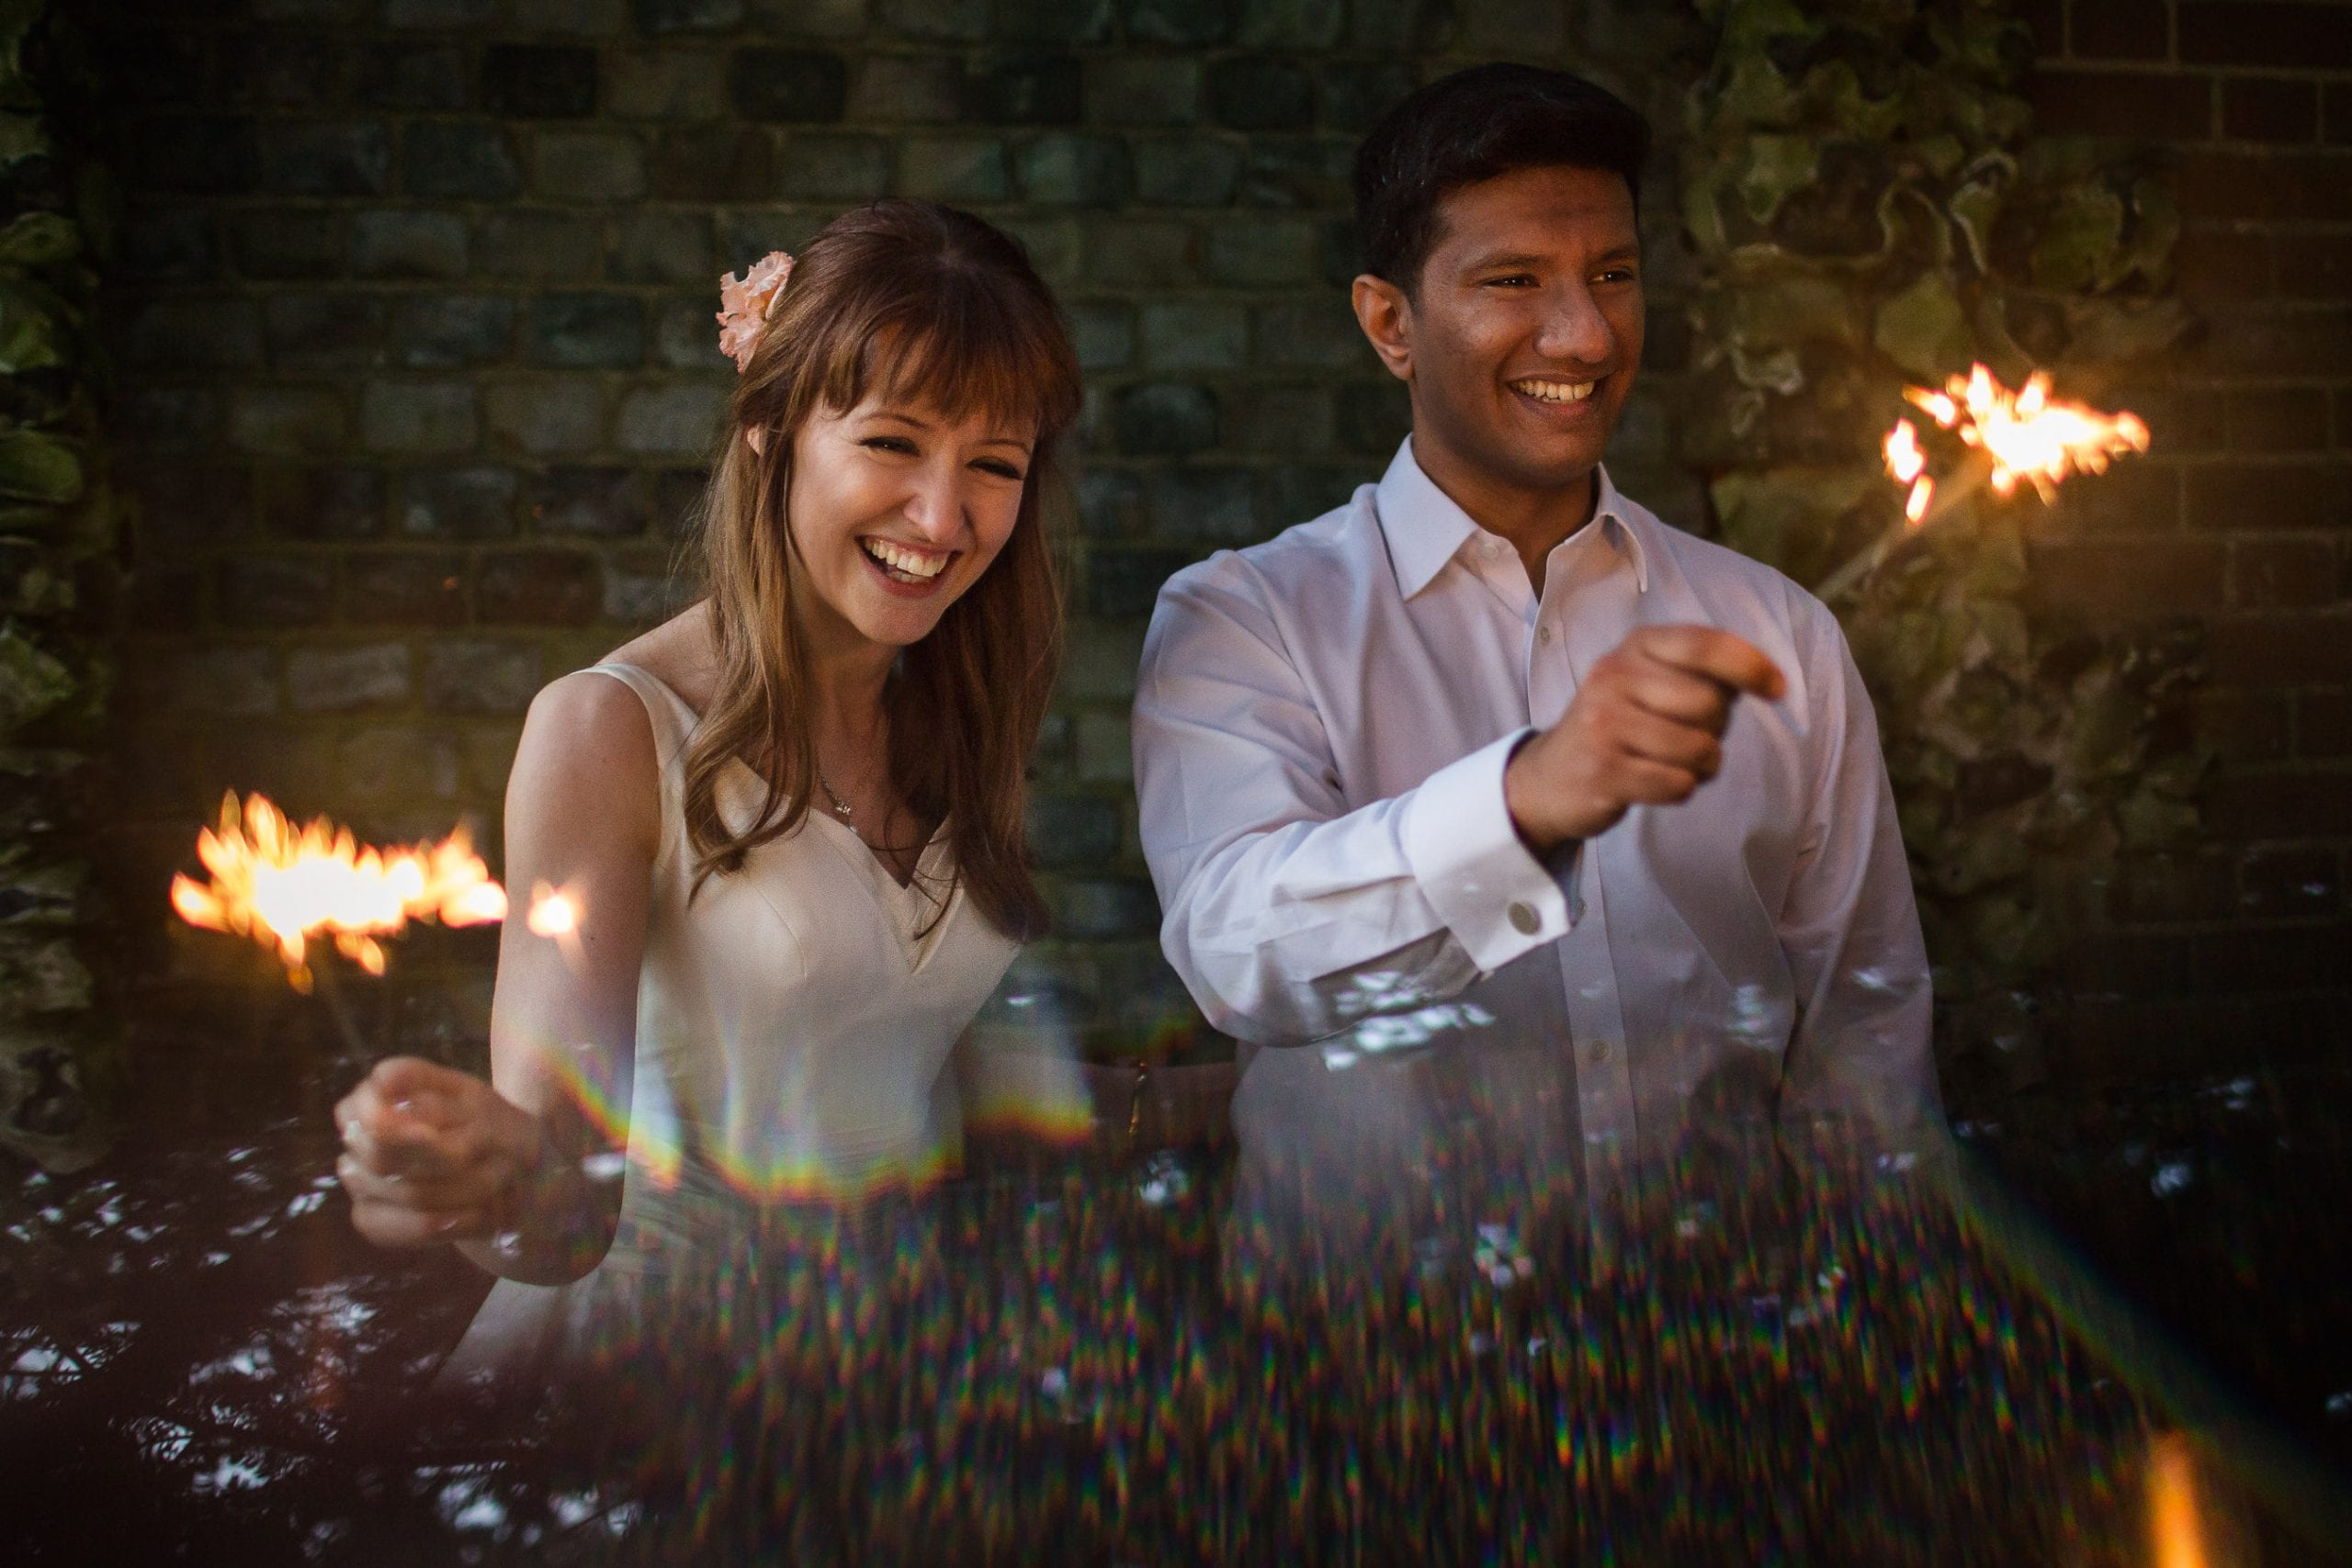 a couple having fun playing with sparklers on their wedding day